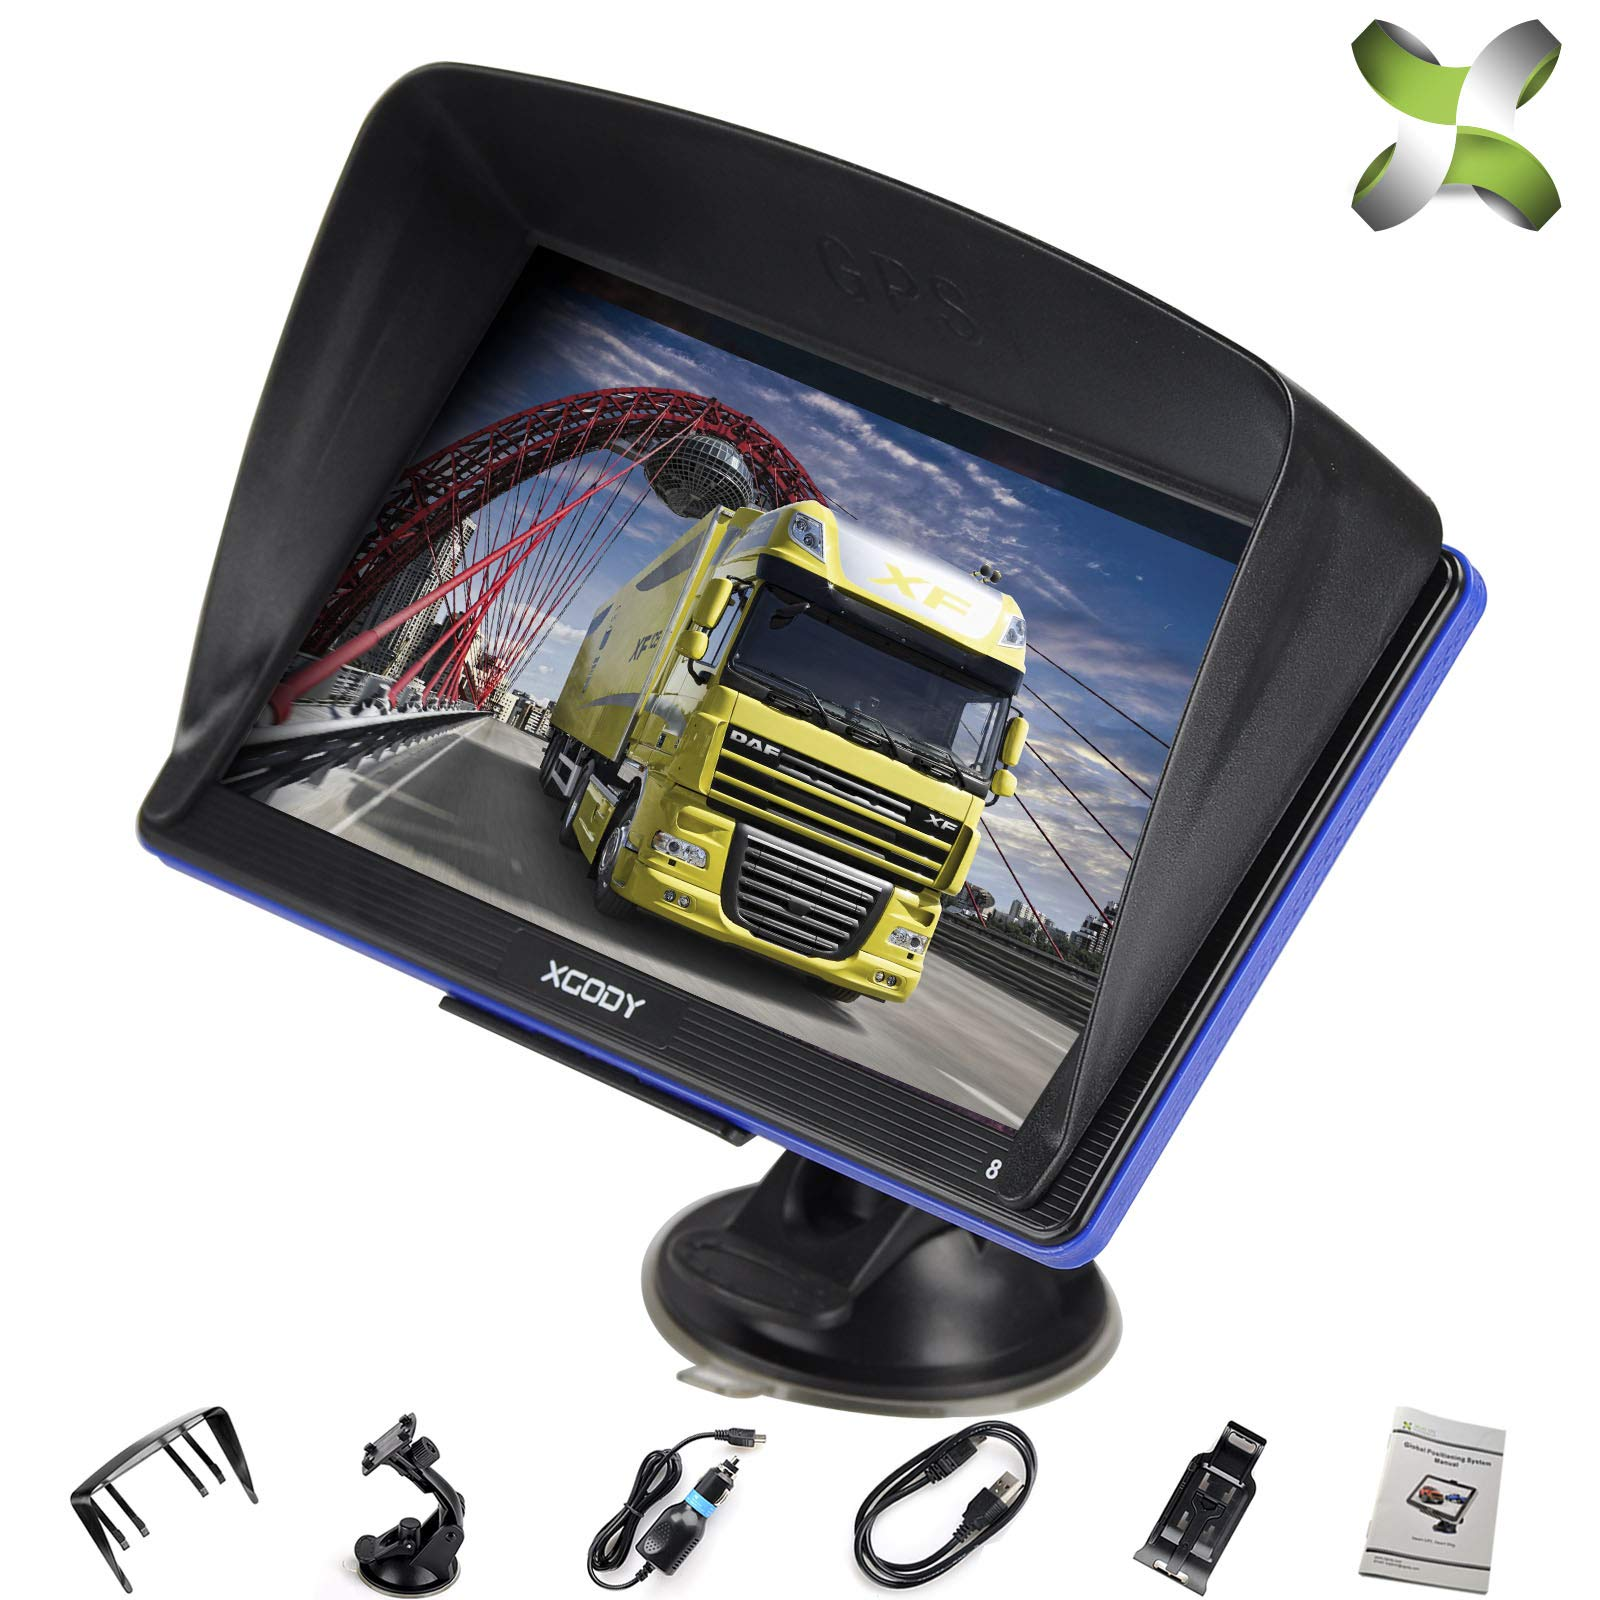 xgody Truck GPS Navigation for Car, 7 inches 8GB Lifetime Map Update Spoken Turn-to-Turn Navigation System for Cars, BT speedcam map Vehicle GPS Navigator Lifetime Free Maps